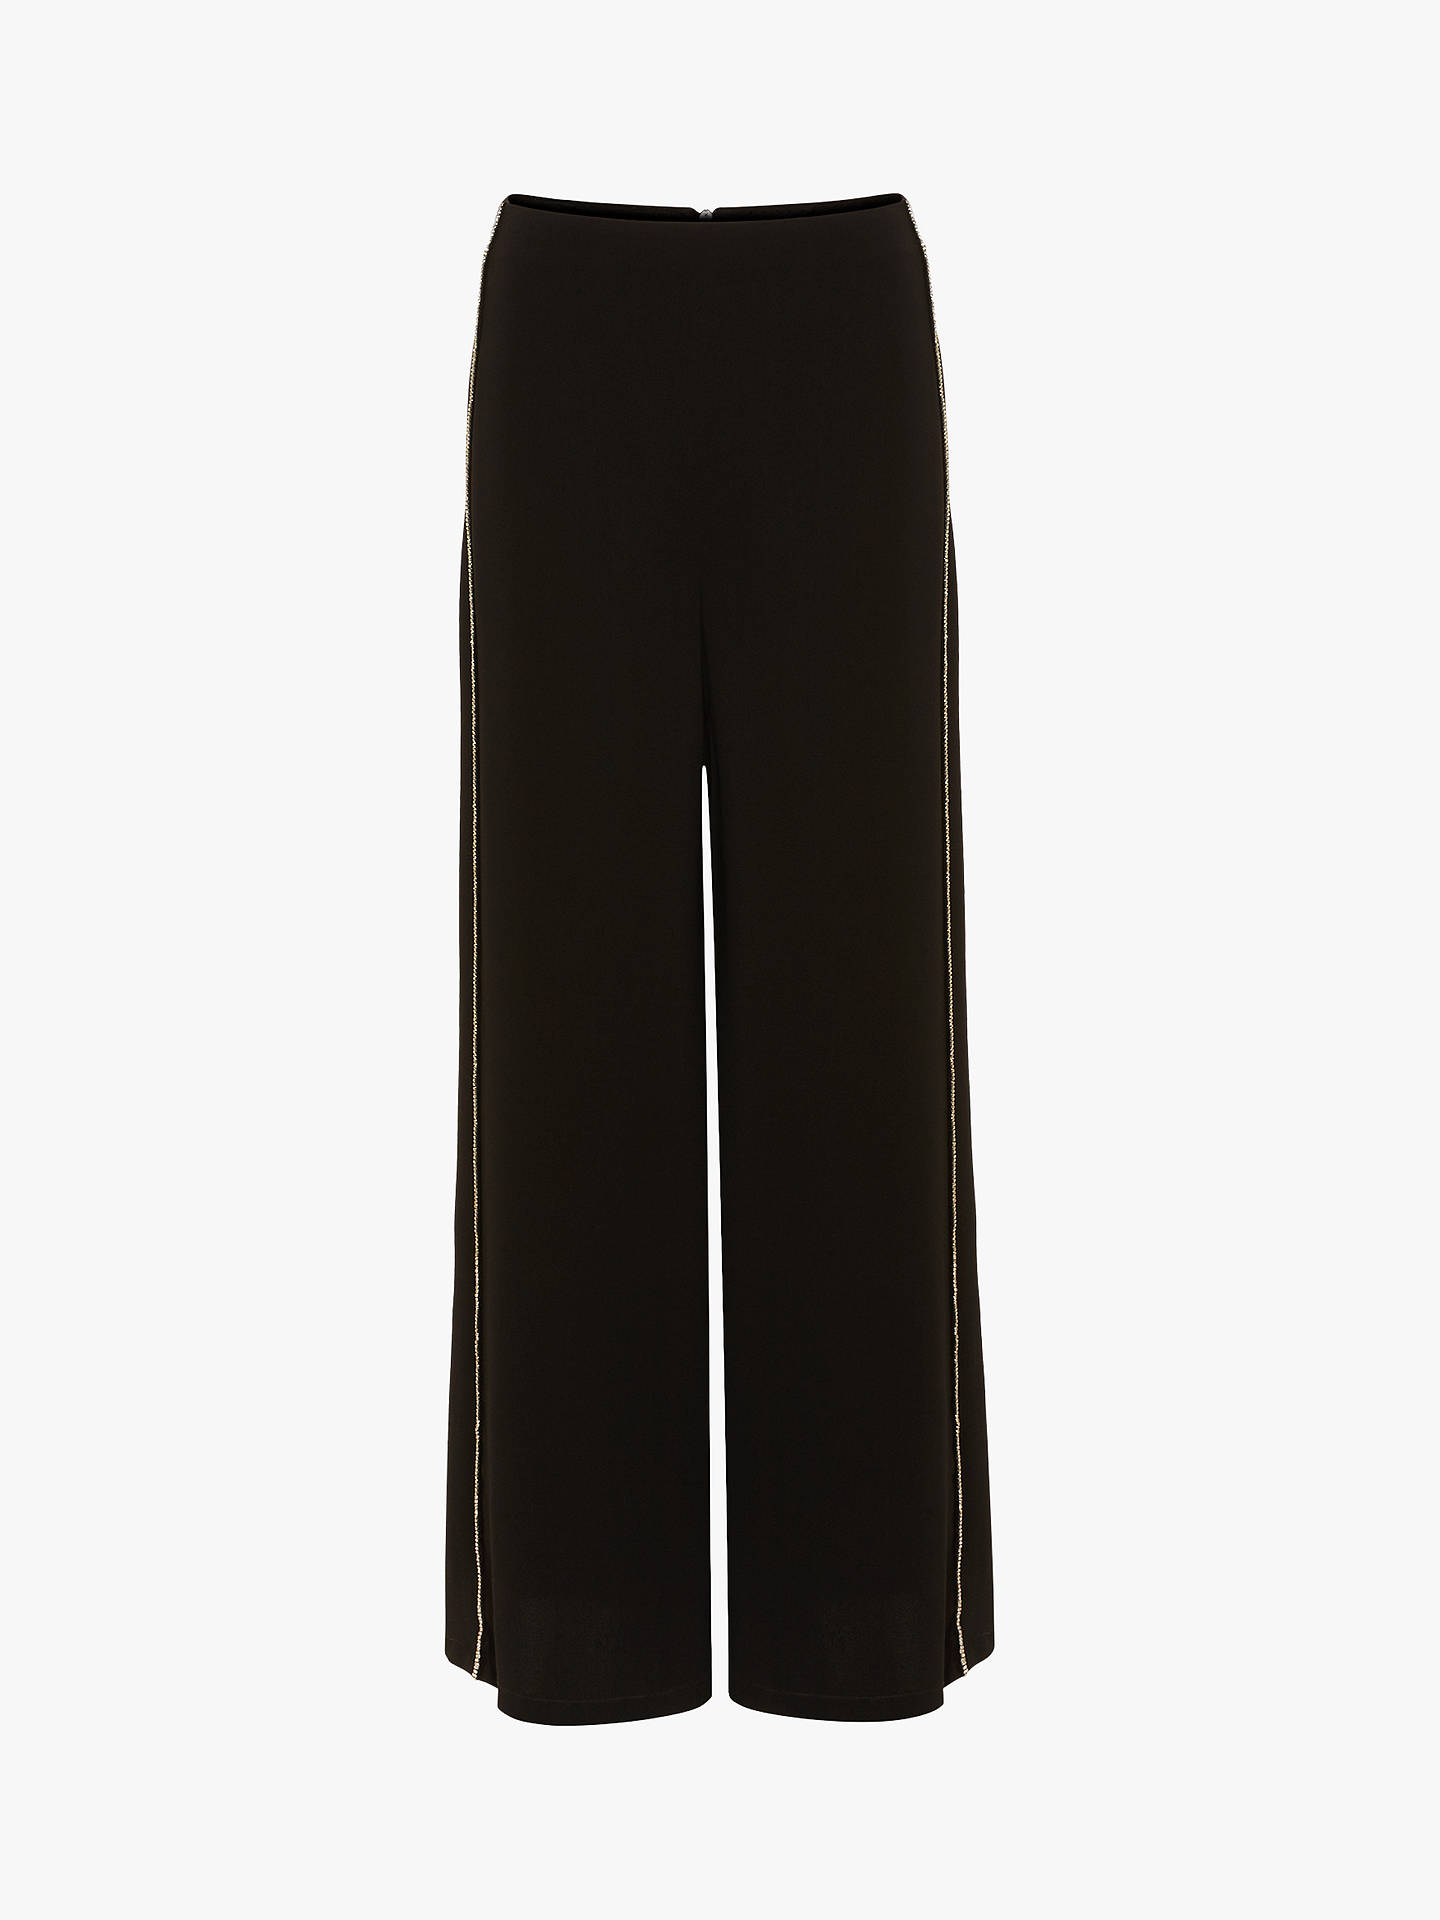 BuyPhase Eight Safia Diamante Trousers, Black, 8 Online at johnlewis.com